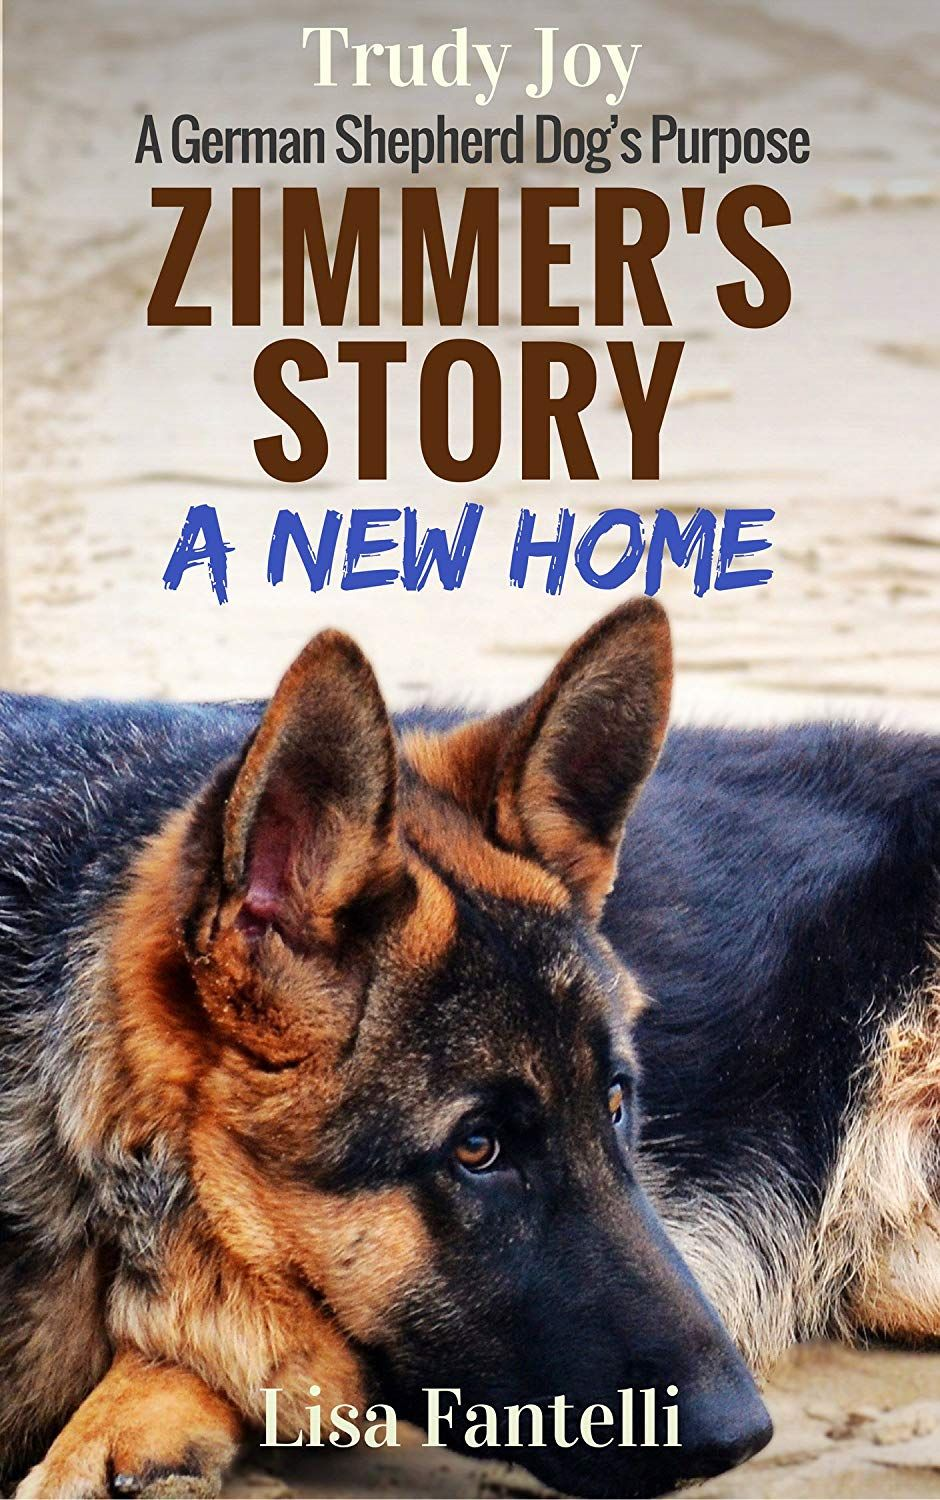 Zimmer S Story A New Home Book 1 A German Shepherd Dog S Purpose American Farm Dogs Ebook Trudy Joy Lisa Fantel Farm Dogs Dog Books German Shepherd Dogs